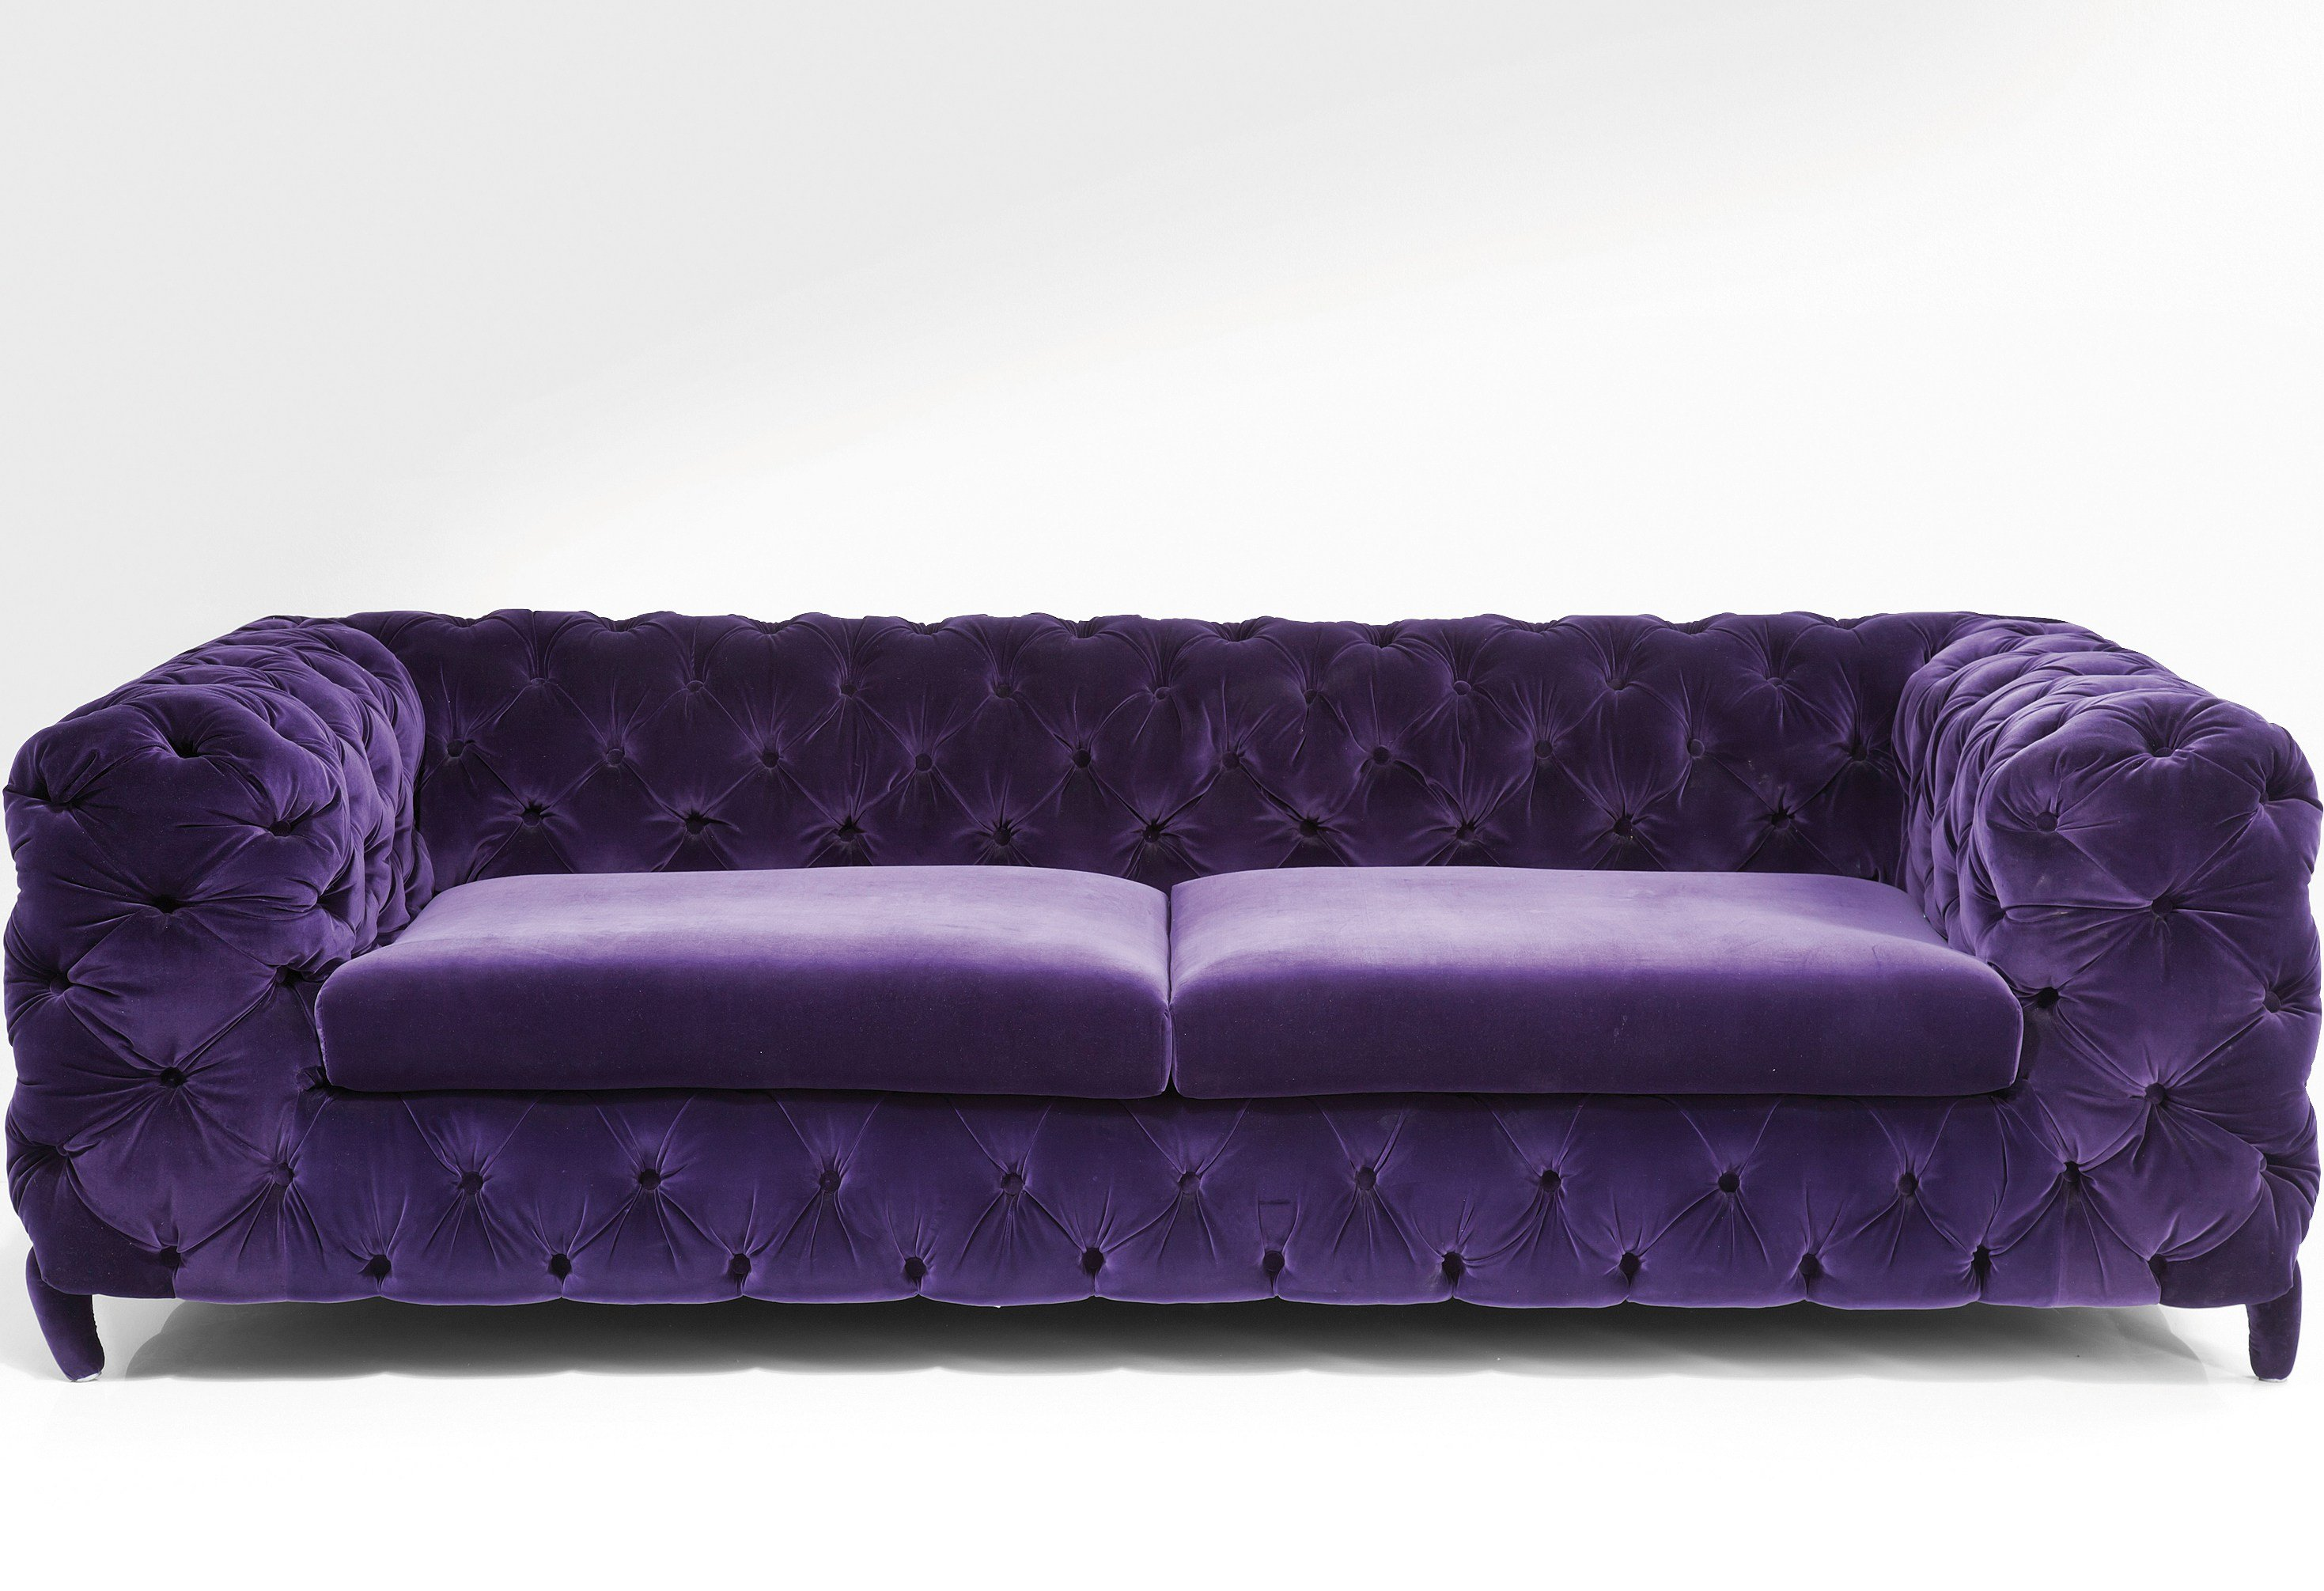 Purple Sofa Bed Images 10 Contemporary Teen Bedroom